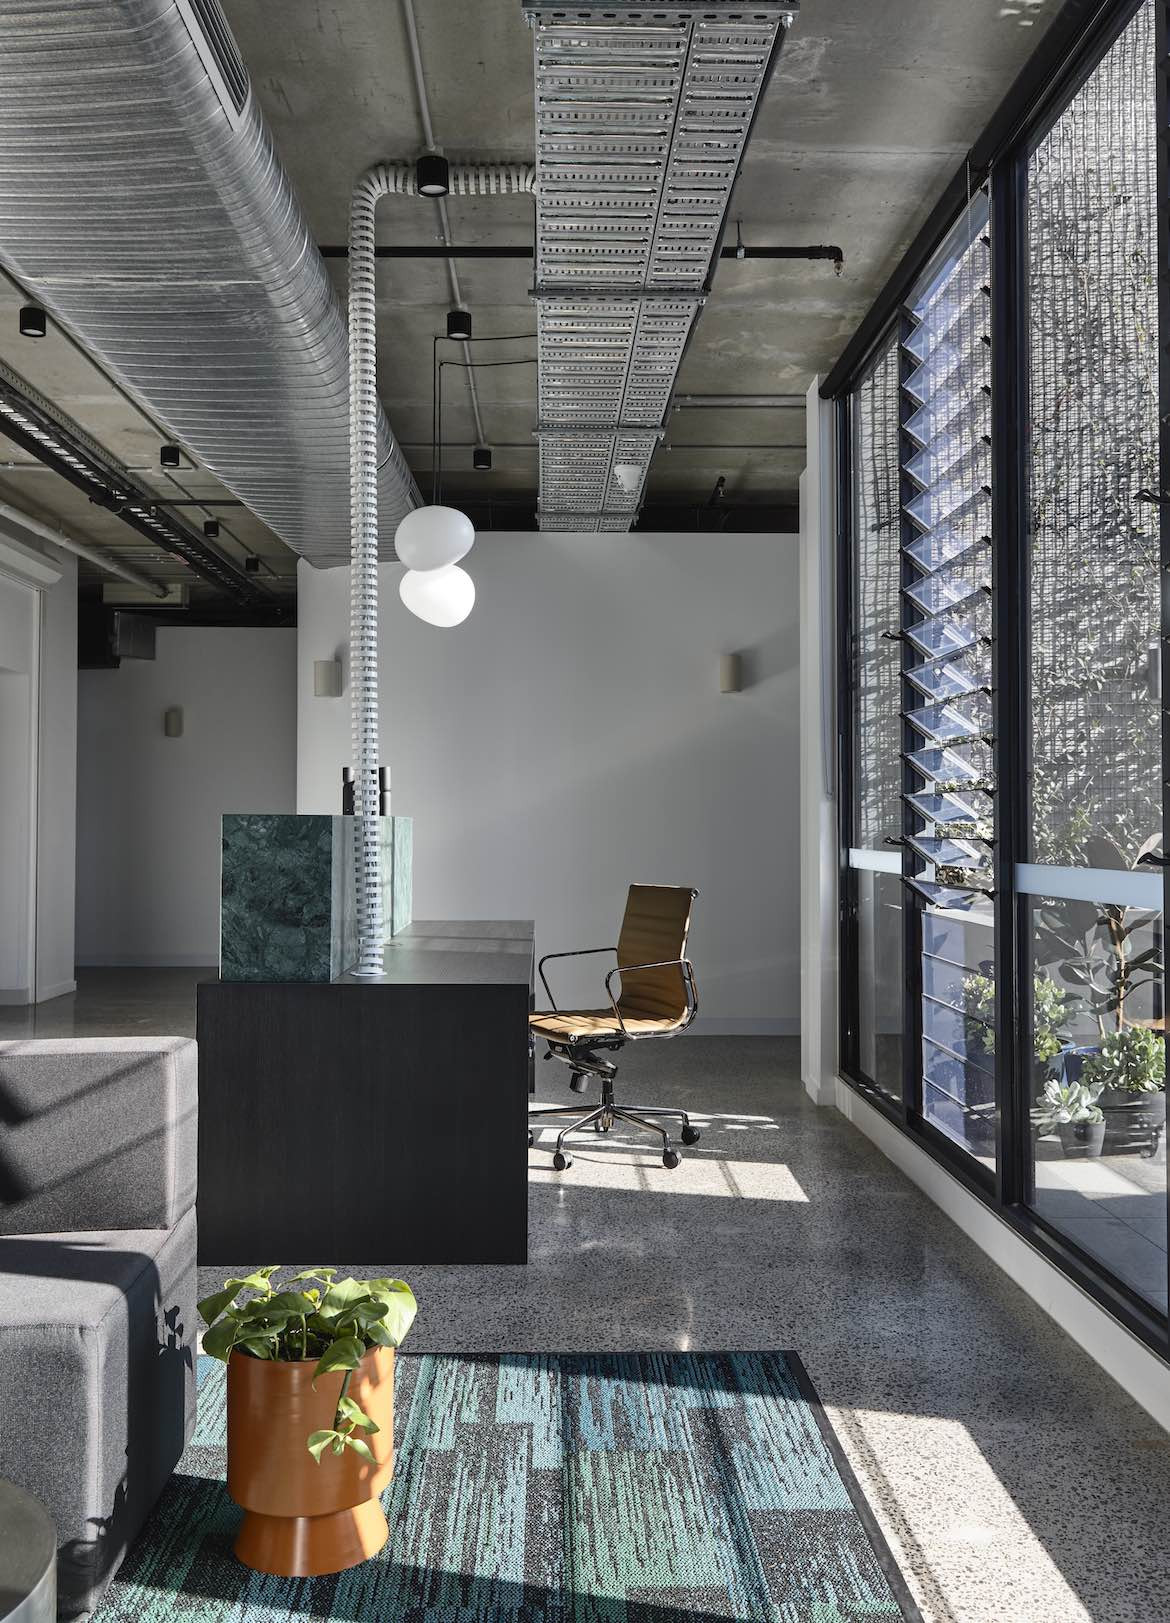 Exposed industrial ceilings in the McCluskey Studio and SJB designed medical practice.